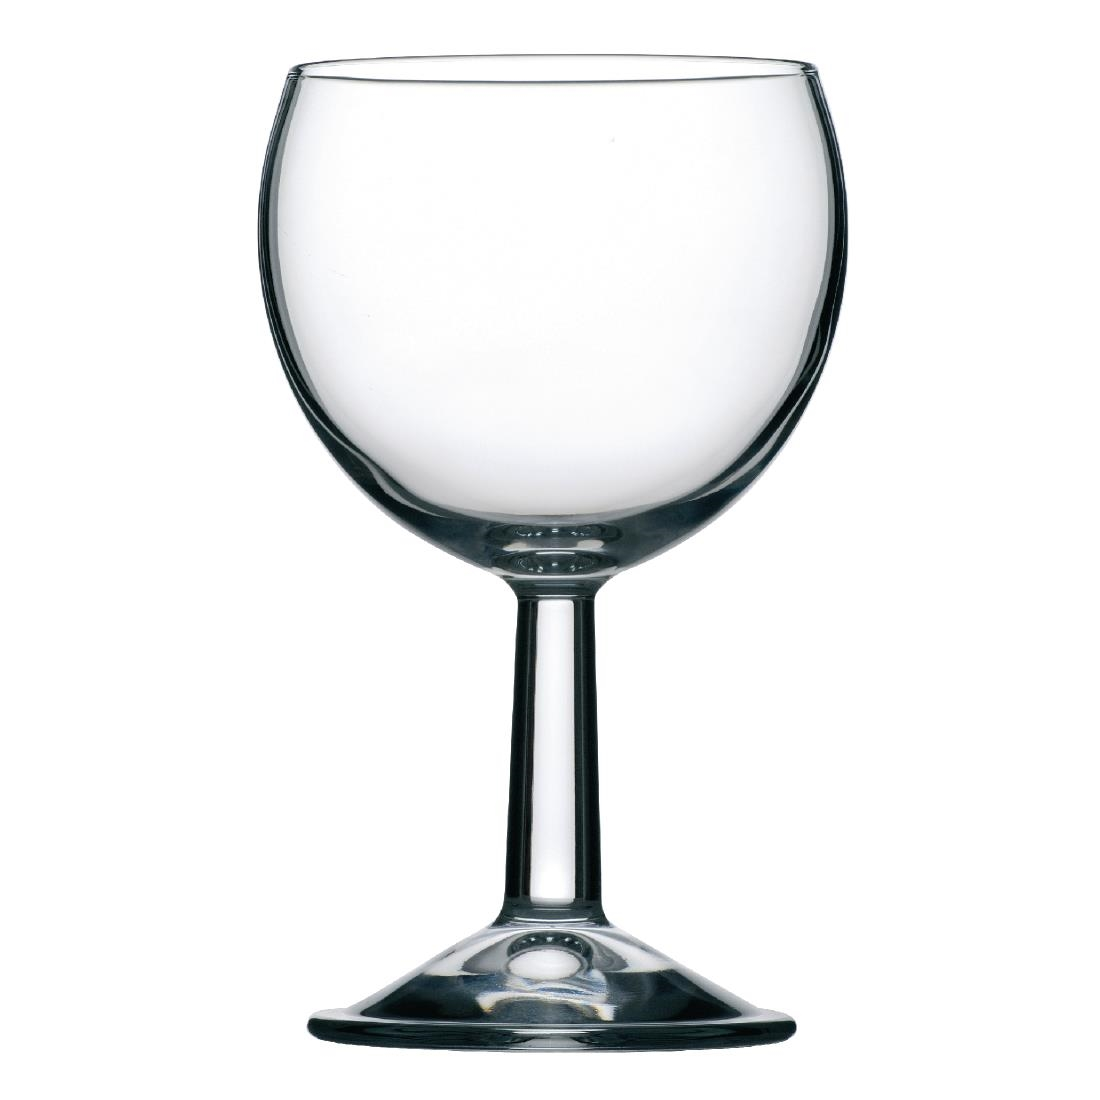 Image of Arcoroc Ballon Wine Goblets 250ml (Pack of 12) Pack of 12